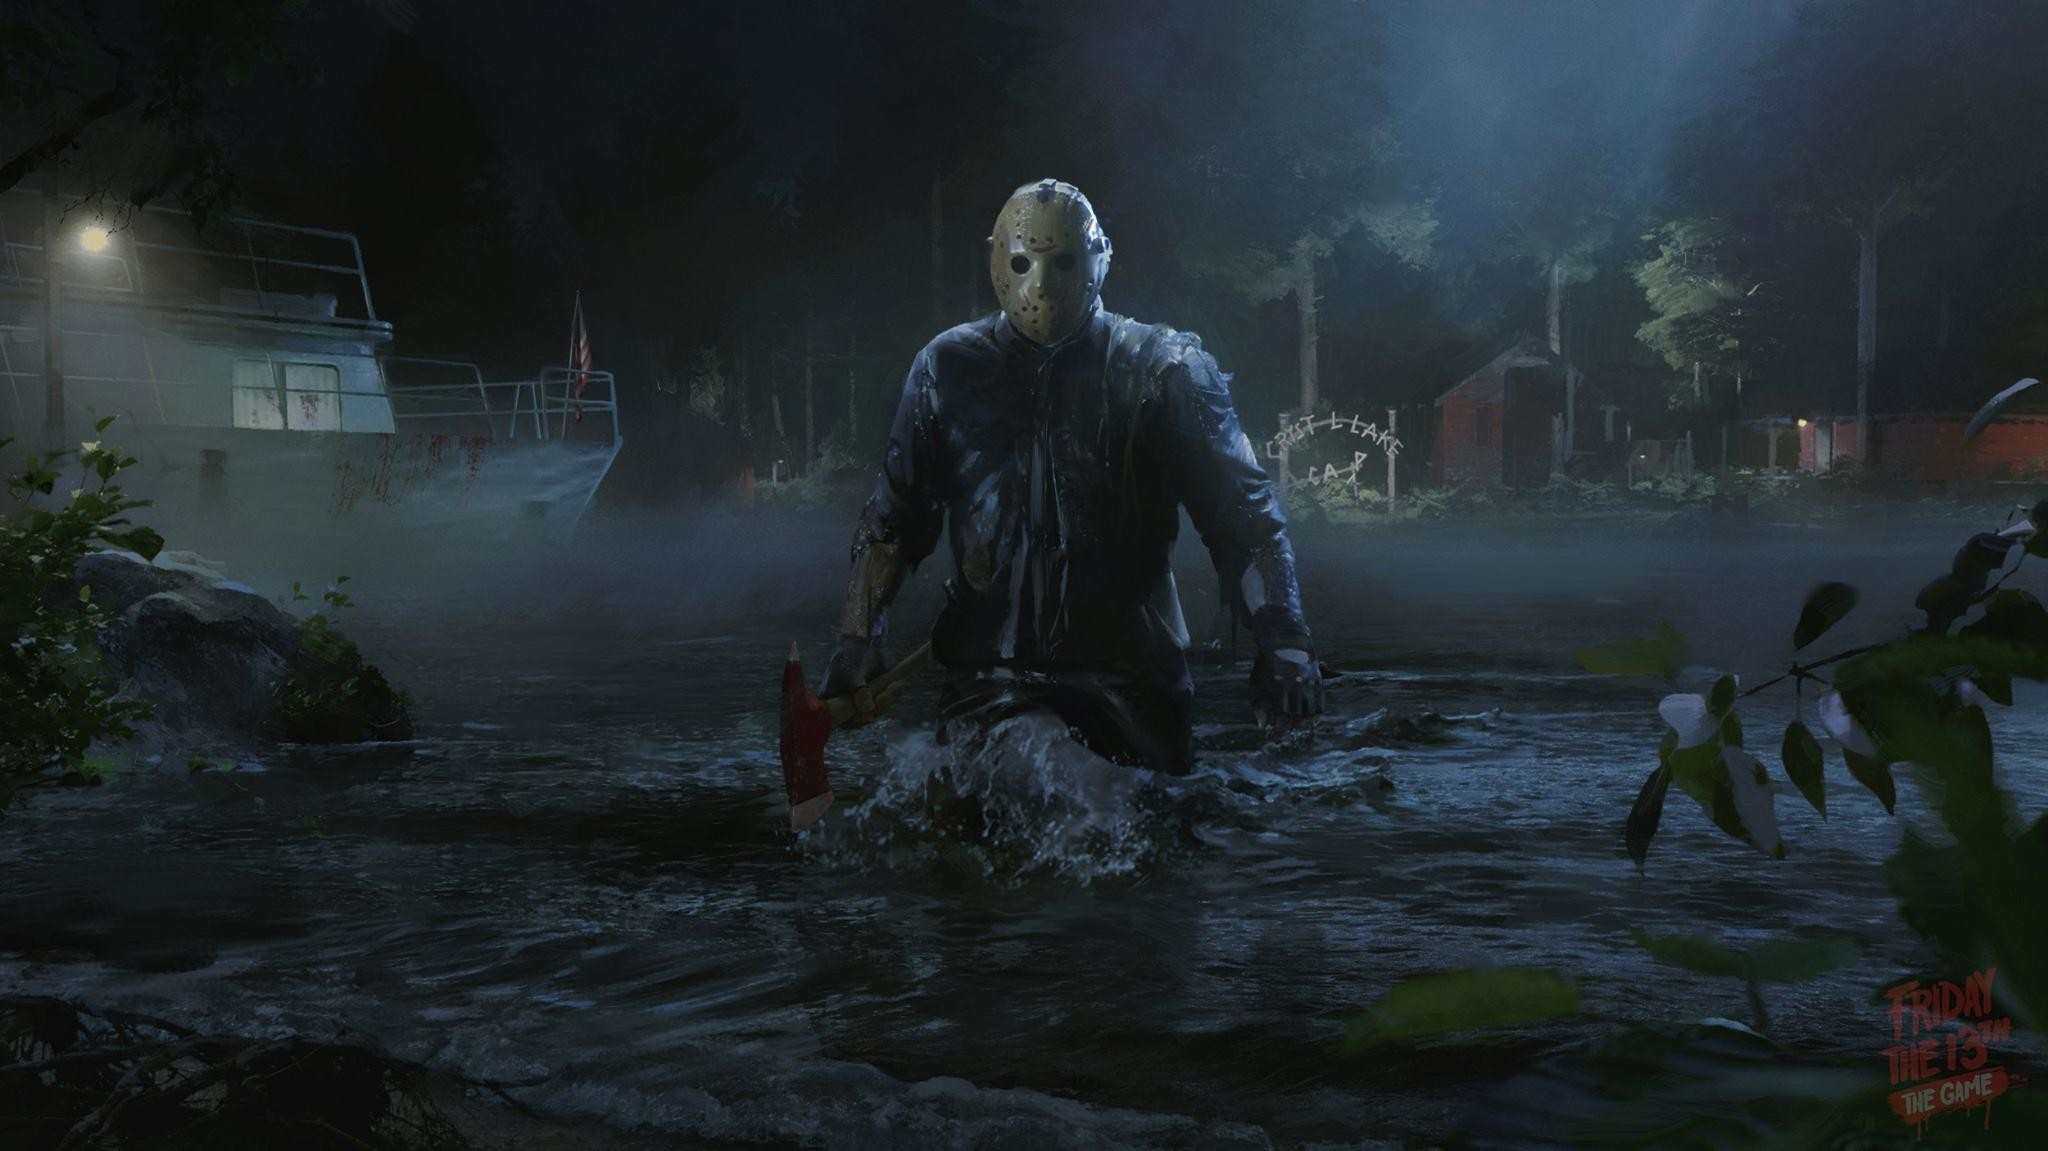 2048x1151 7 Friday The 13th: The Game HD Wallpapers | Backgrounds .